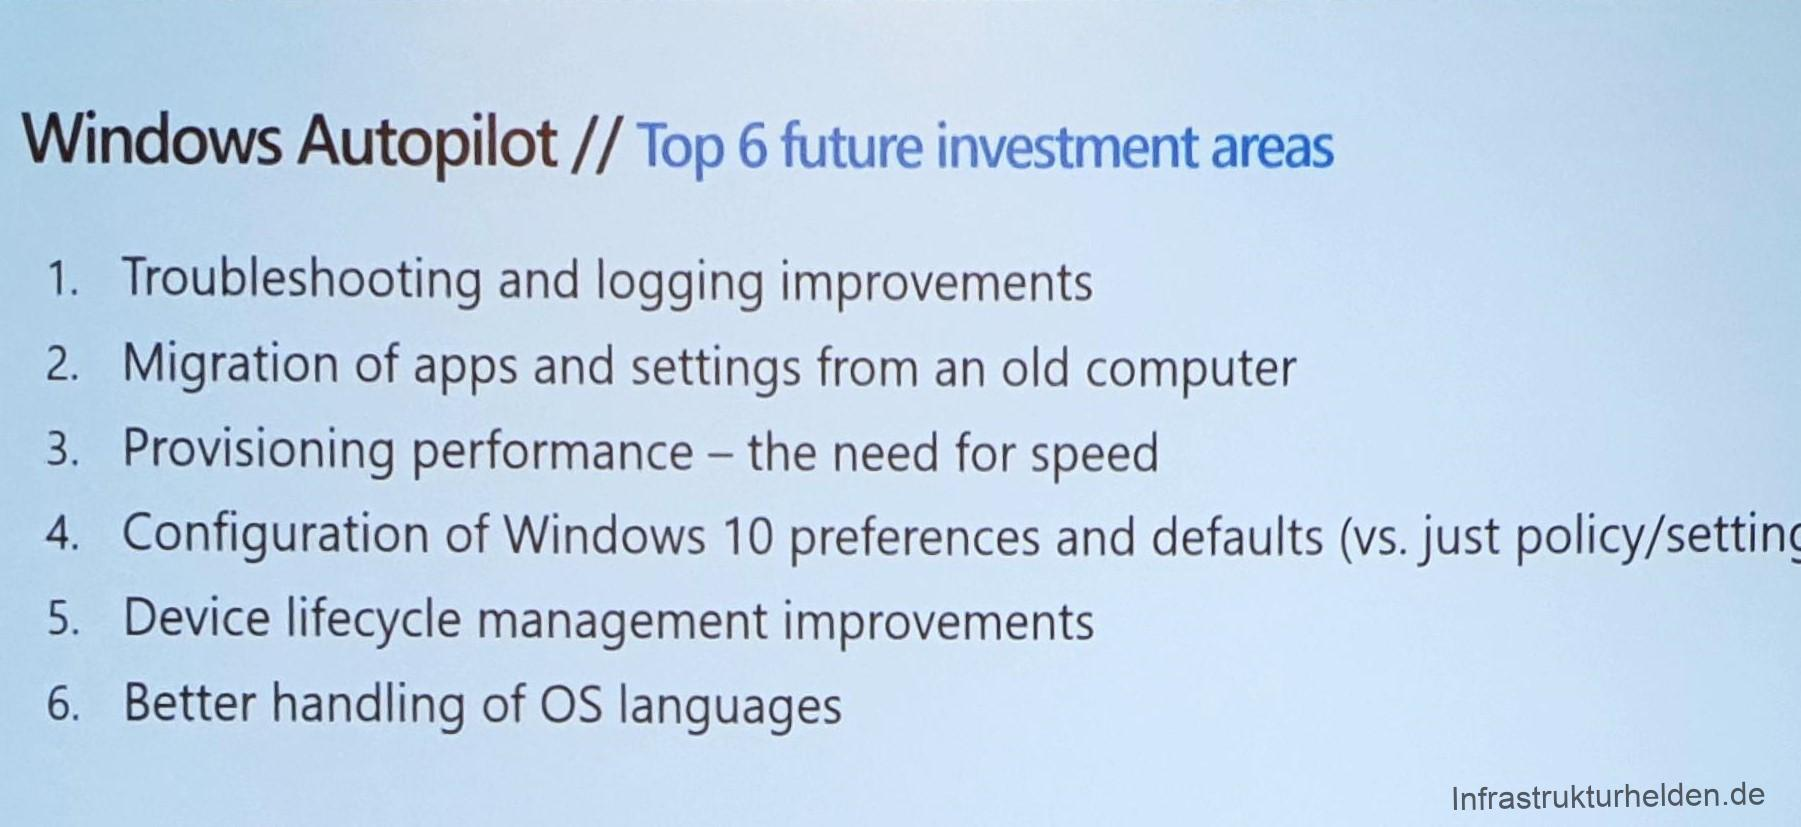 Computergenerierter Alternativtext: Windows Autopilot // Top 6 future investment areas 1. 2. 3. 4. 5. 6. Troubleshooting and logging improvements Migration of apps and settings from an Old computer Provisioning performance - the need for speed Configuration of Windows 10 preferences and defaults (vs. just policy/setting Device lifecycle management improvements Better handling of OS languages